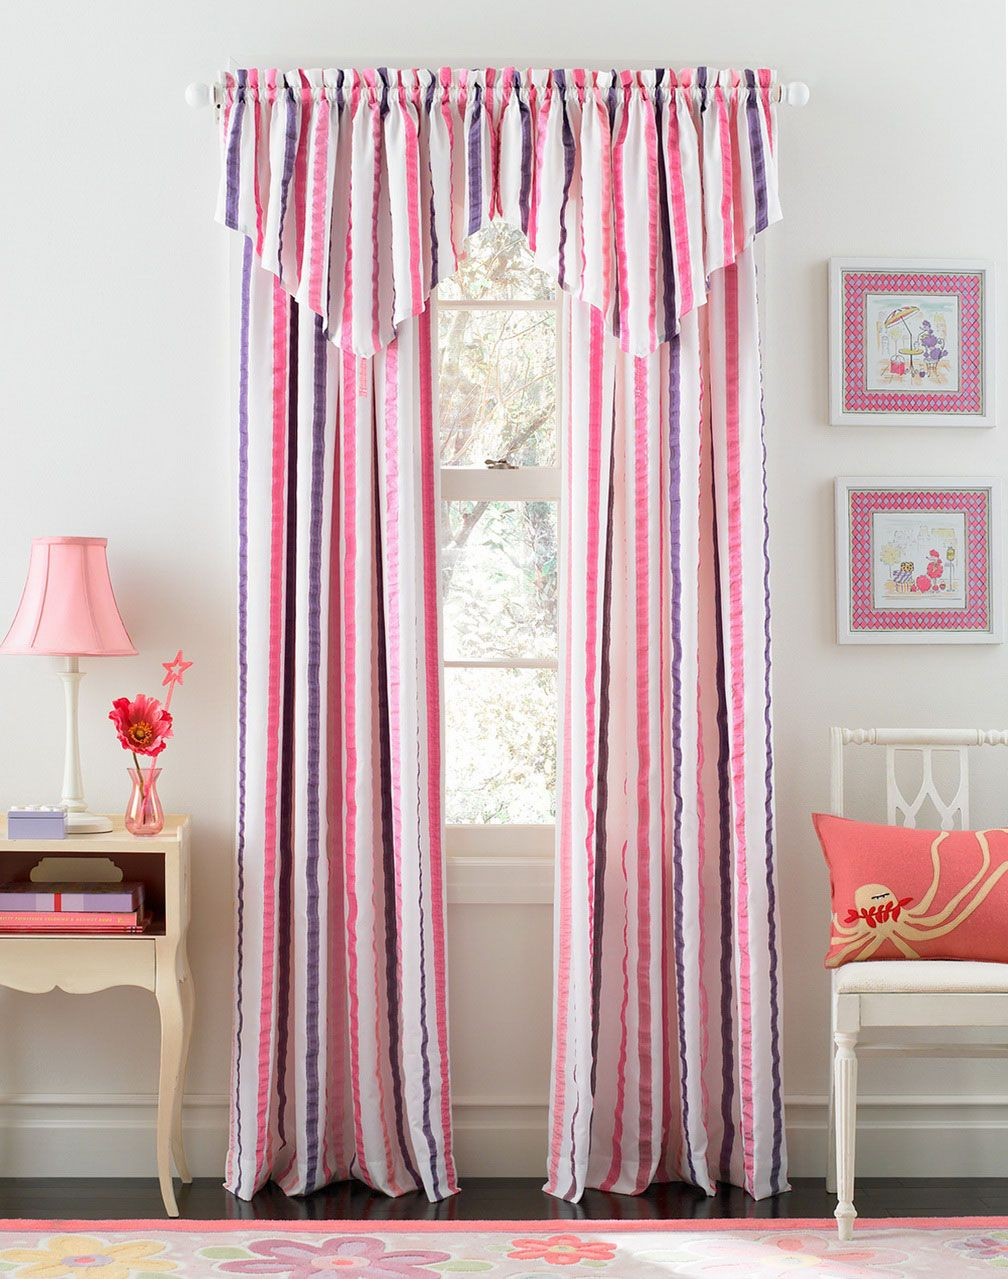 wonderful loraingirls bedroom curtain curtains for and design target in walmart girls at image